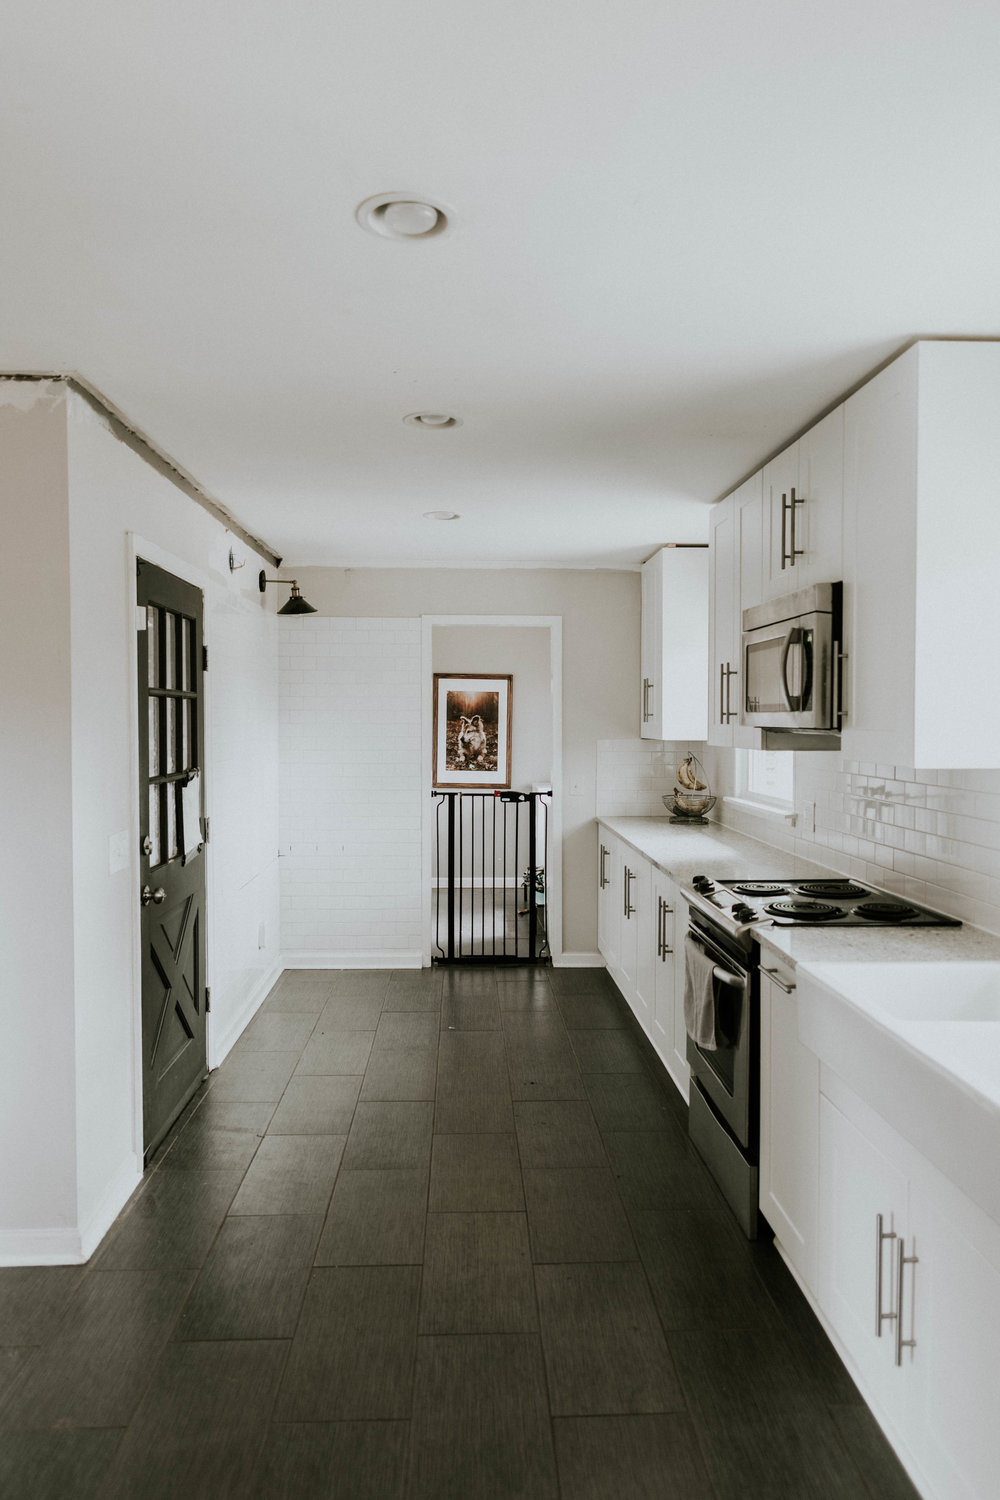 WHAT WOULD YOU DO? Kitchen corner help!